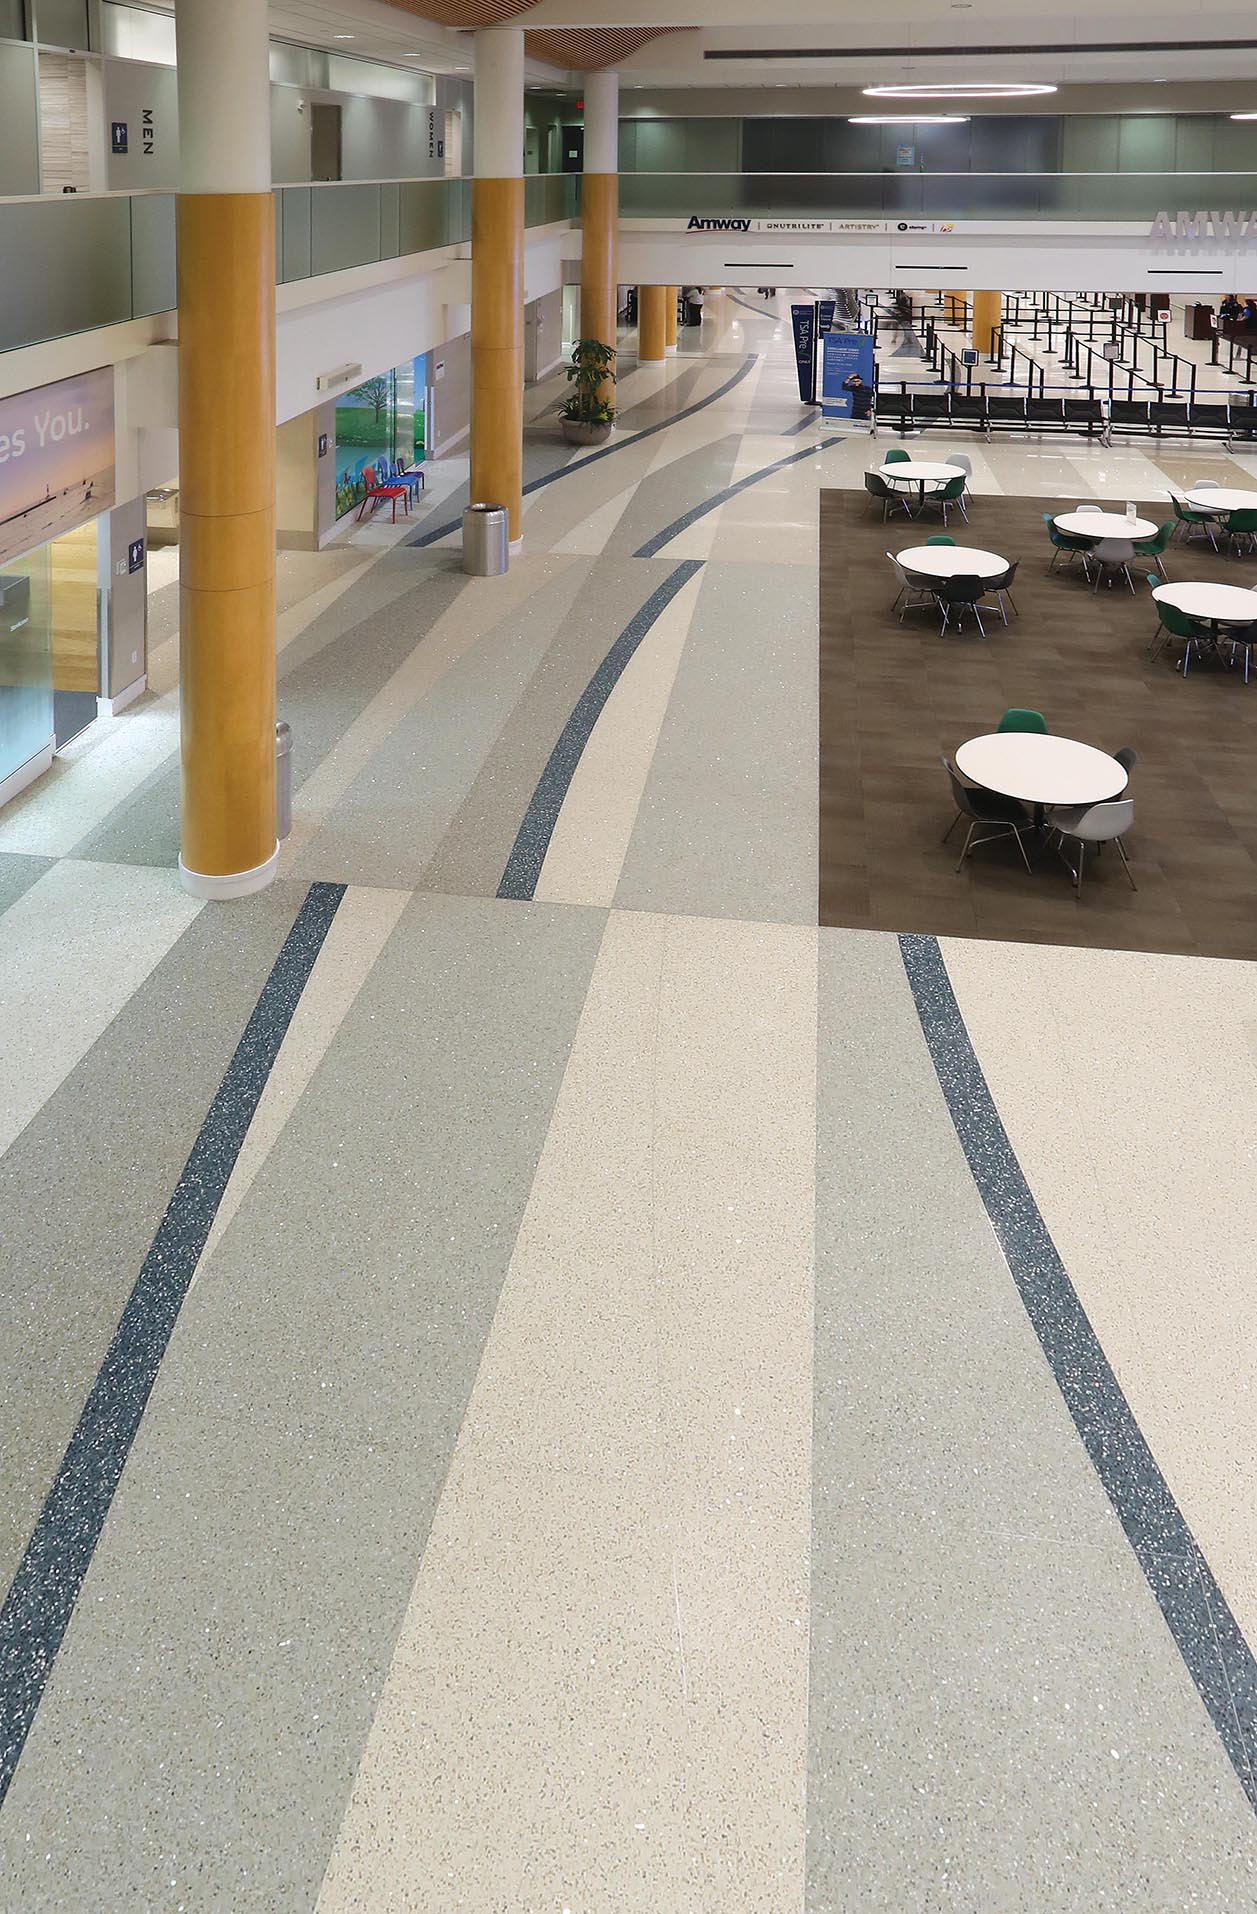 Gerald R. Ford International Airport terrazzo floor design from NCTA